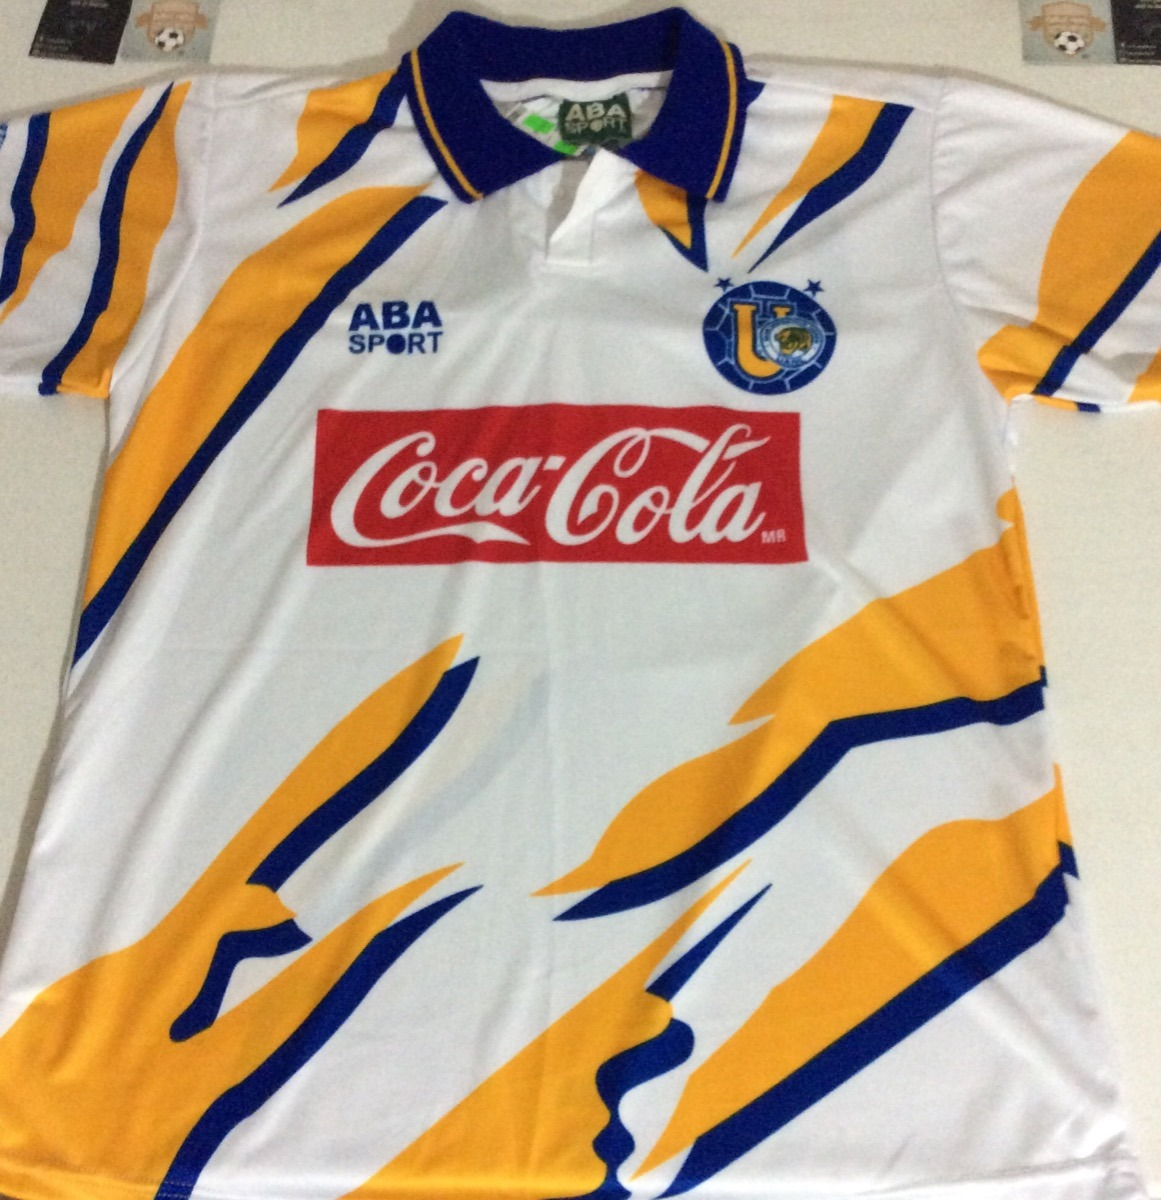 new products 54cad 33326 Jersey Retro Aba Sport Tigres Uanl 95-96, Tercer Uniforme